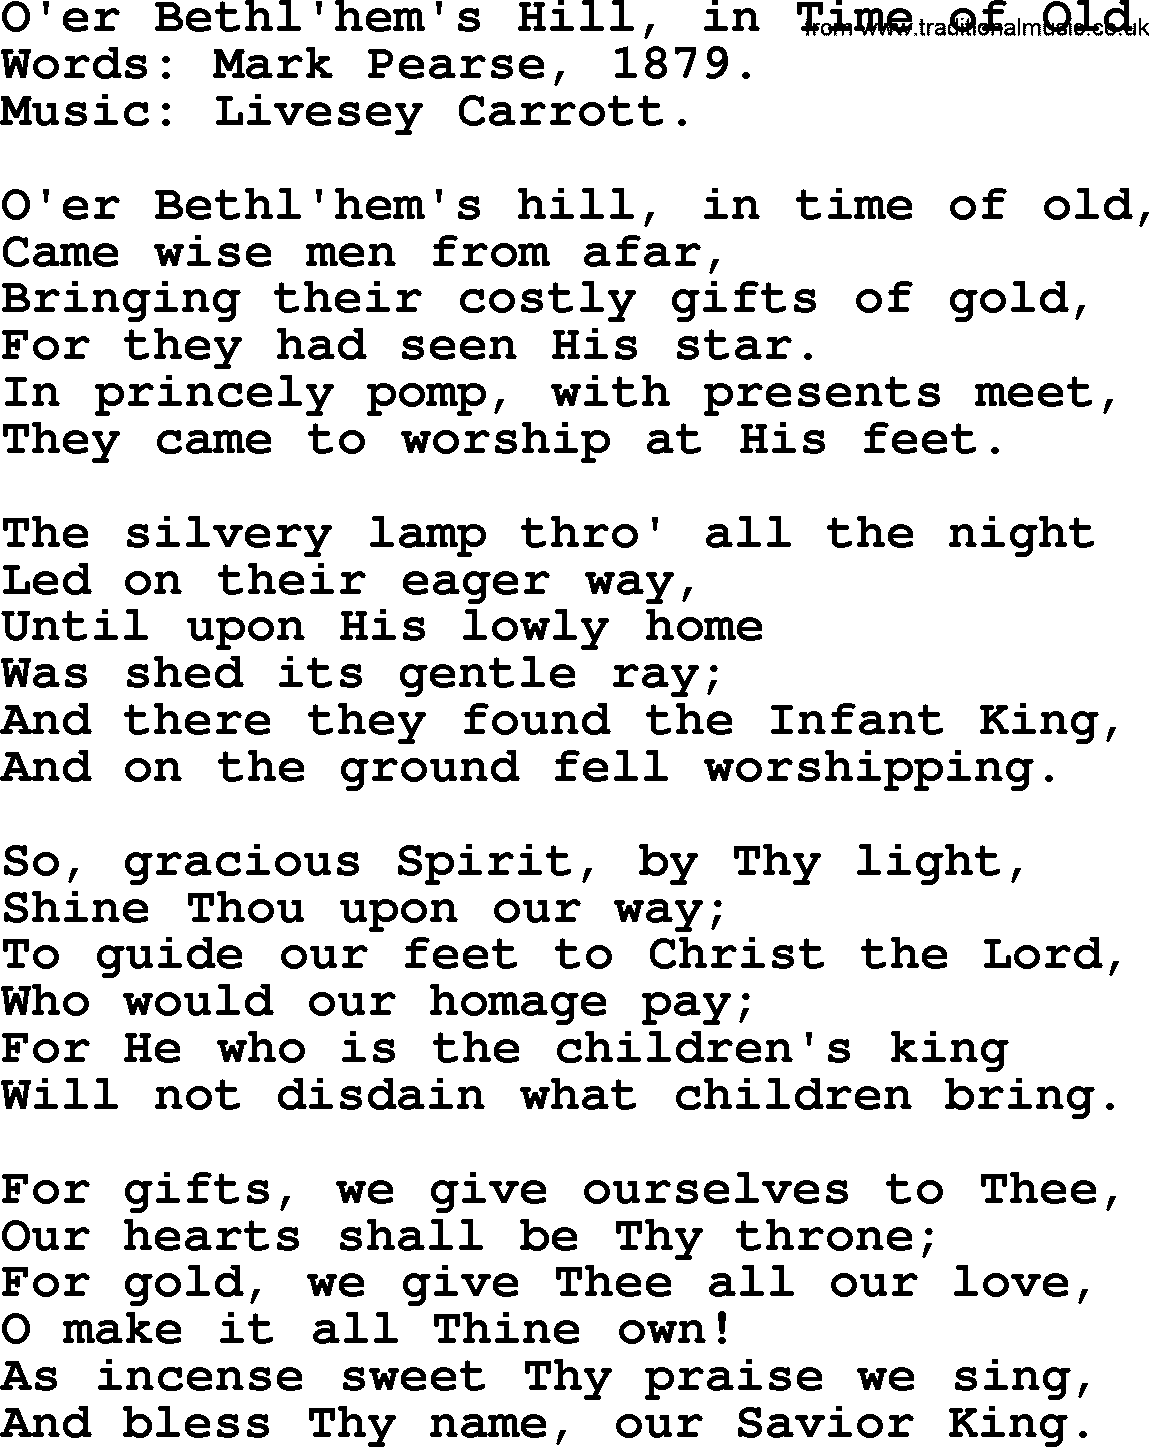 Christmas Hymns, Carols and Songs, title: O\'er Bethl\'hem\'s Hill, In ...